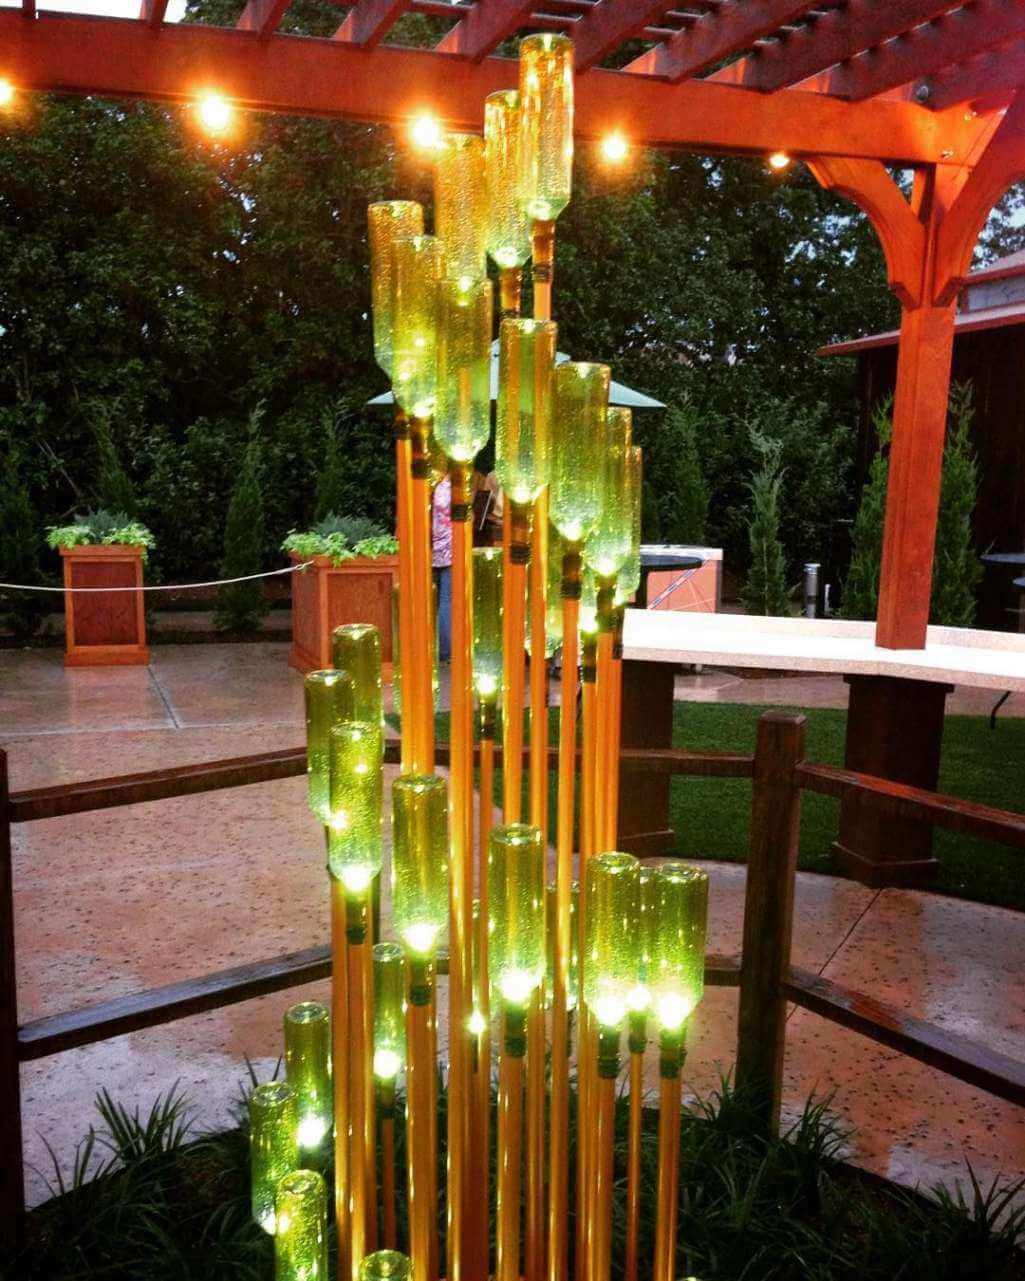 10 Diy Landscape Lighting Ideas From Recycled Materials